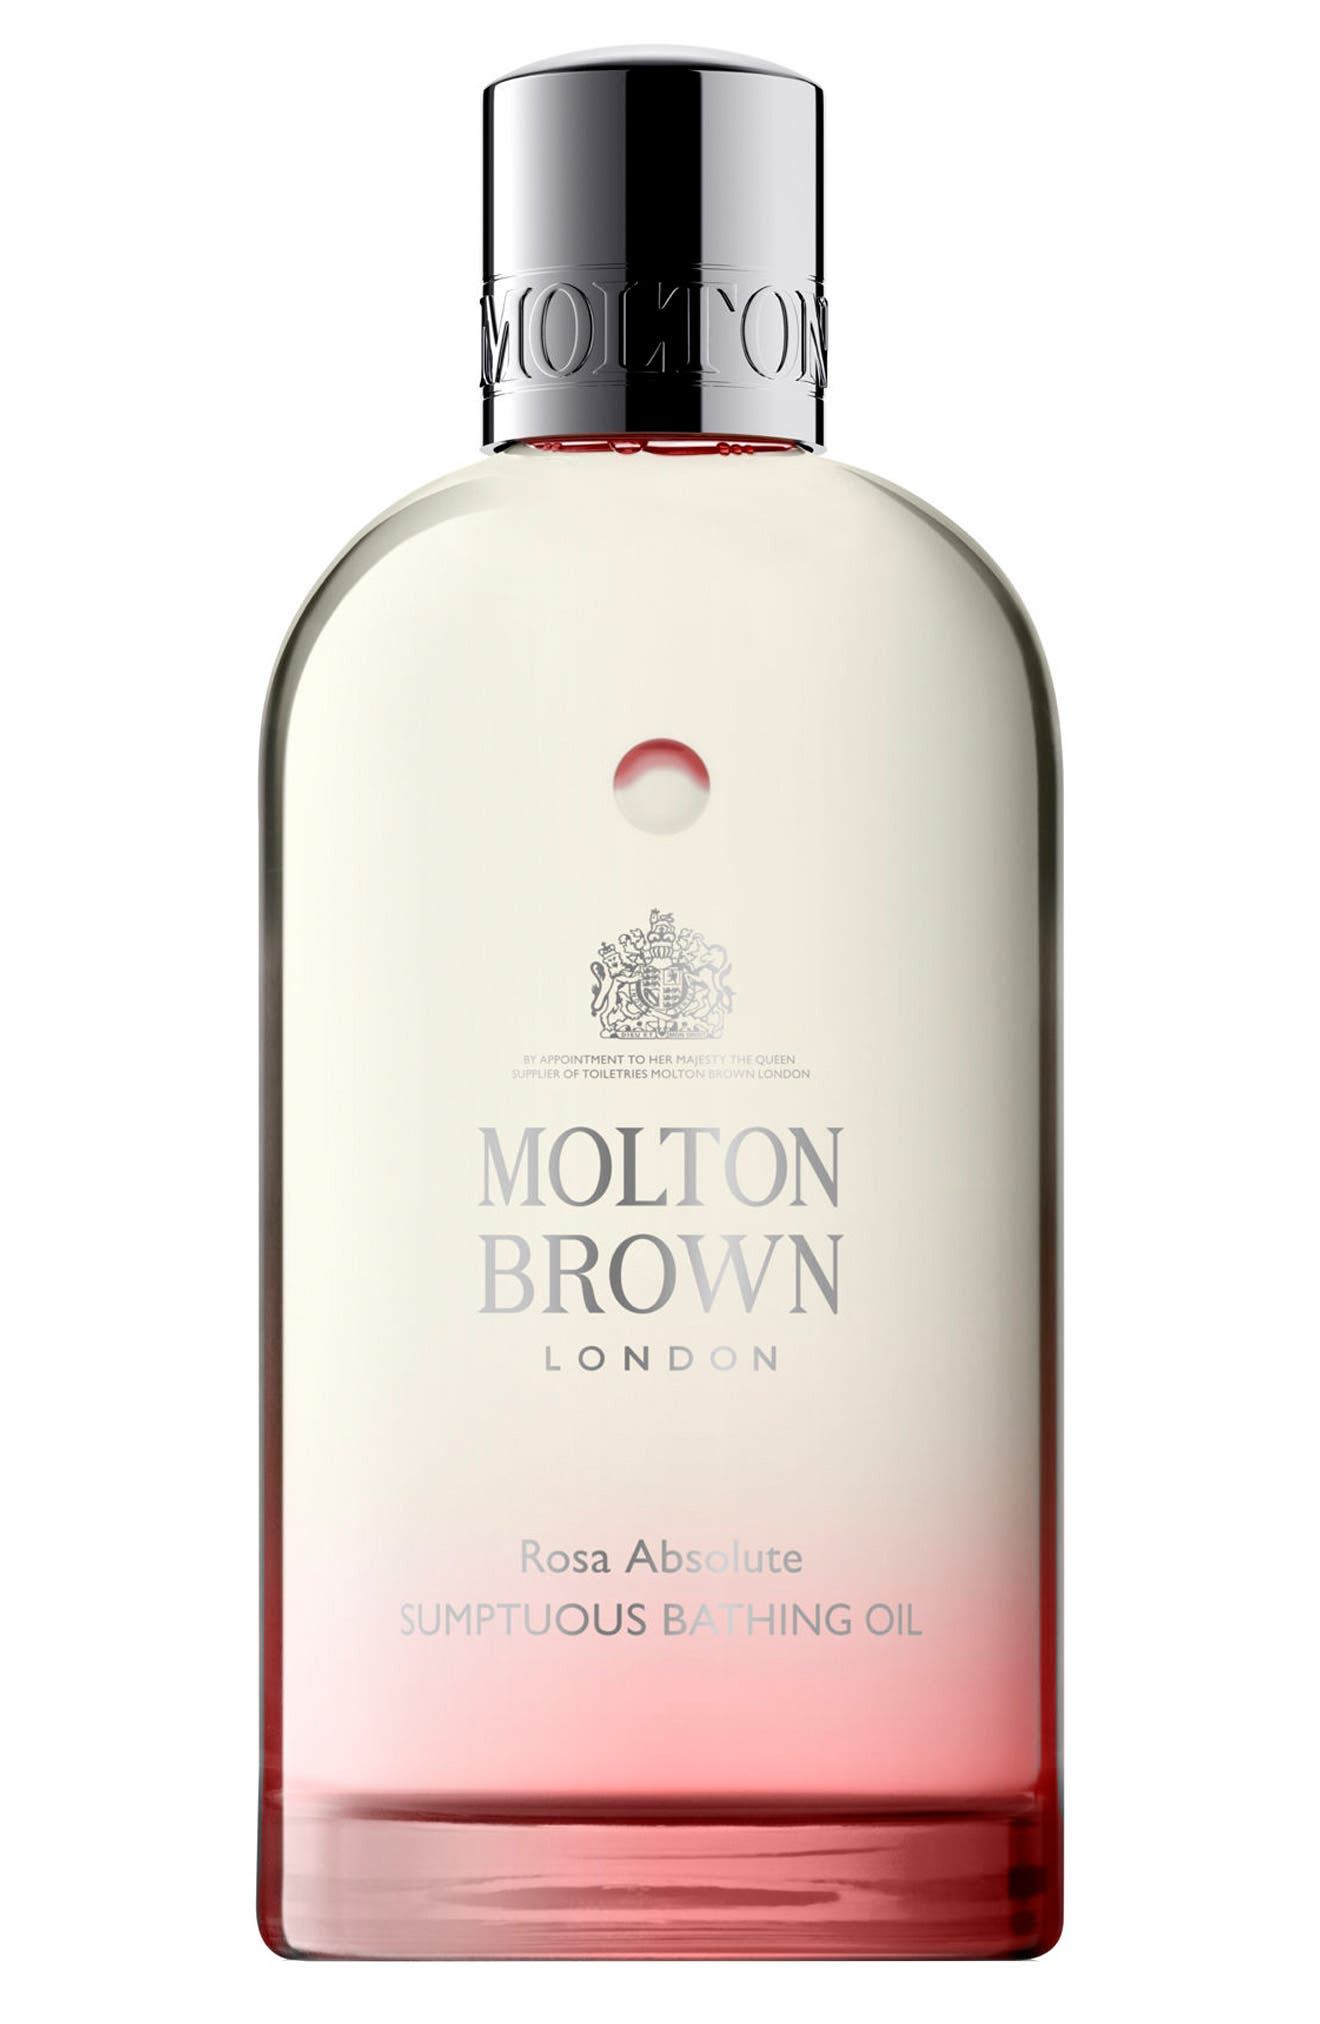 MOLTON BROWN London Rosa Absolute Sumptuous Bathing Oil